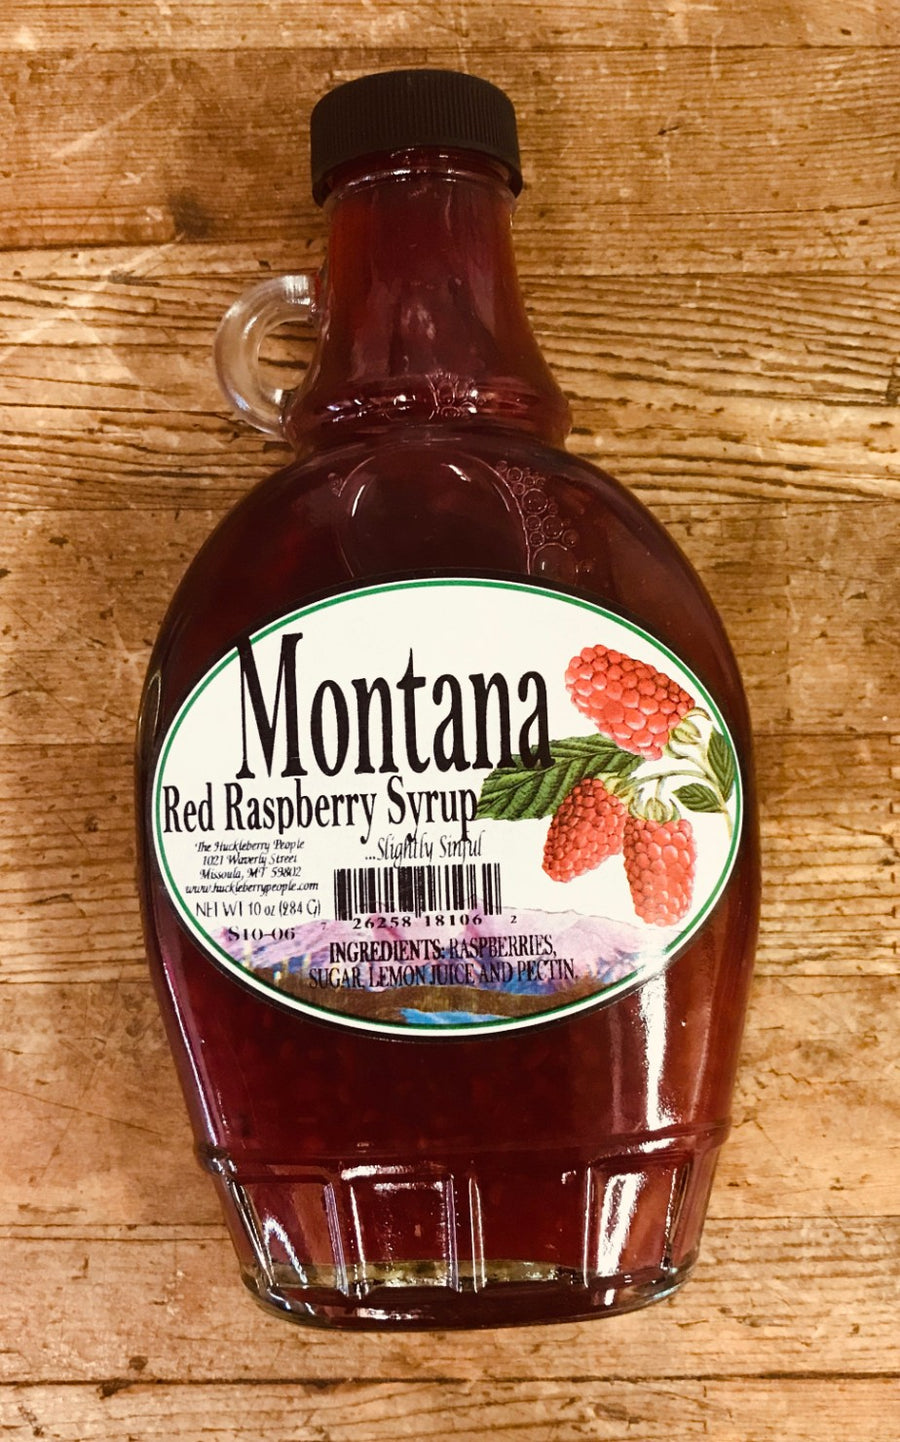 Montana Red Raspberry Syrup